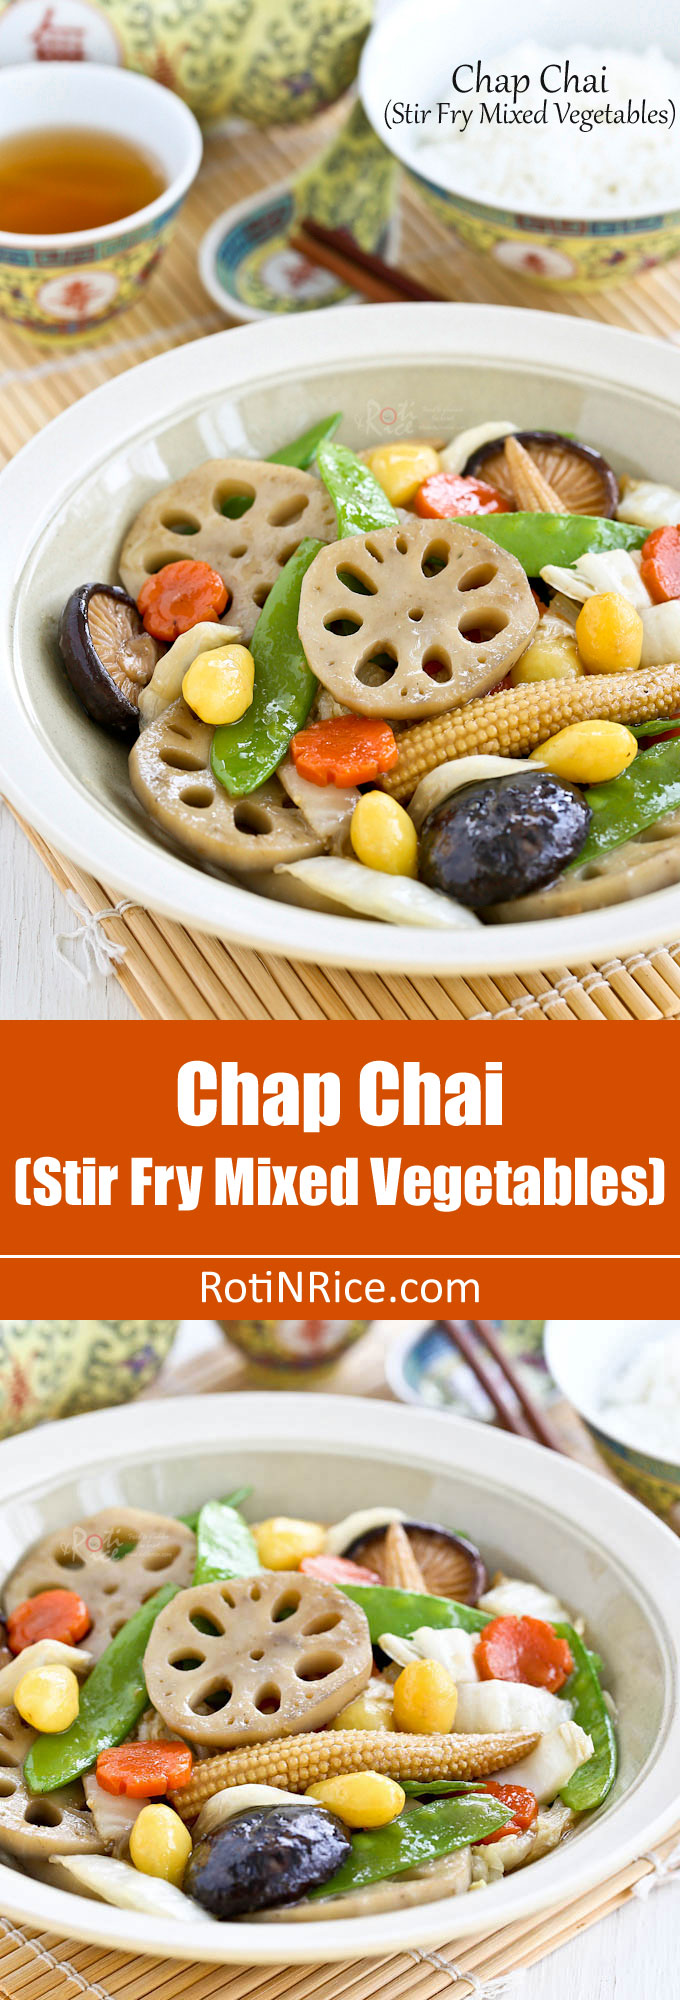 This quick and easy version of Chap Chai (Stir Fry Mixed Vegetables) is suitable for every day or festive occasions. Vegetables may vary as desired. | RotiNRice.com